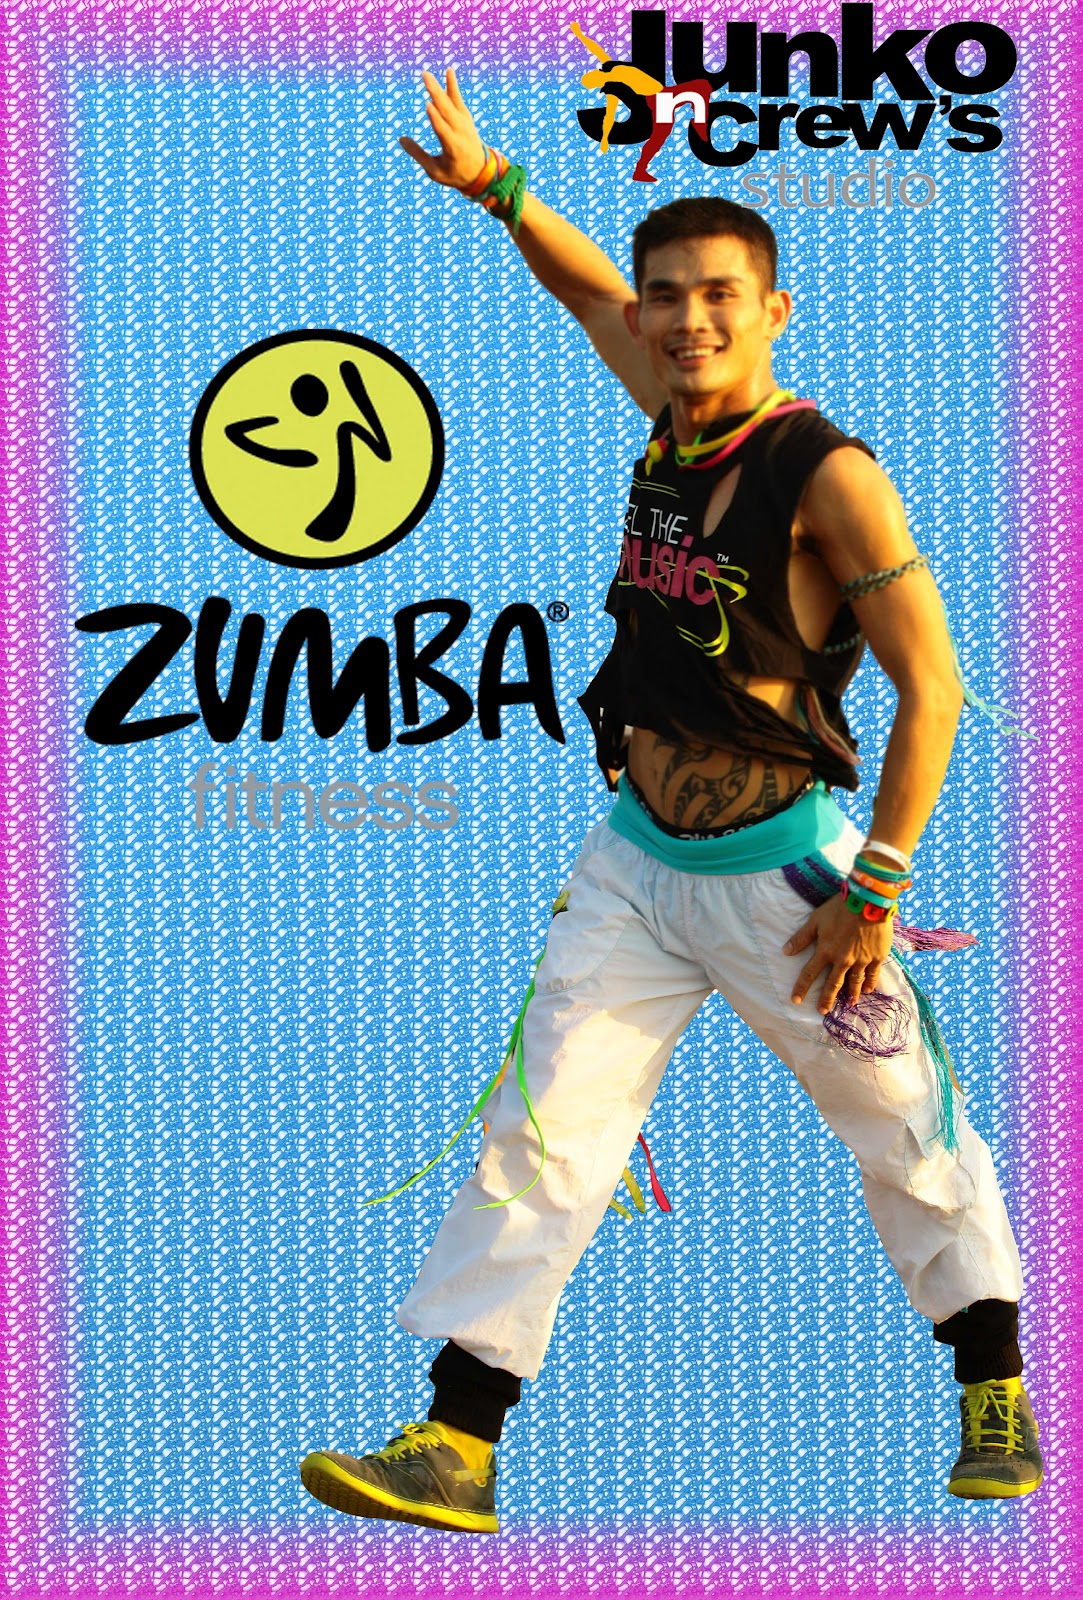 Does Zumba (dance) work?